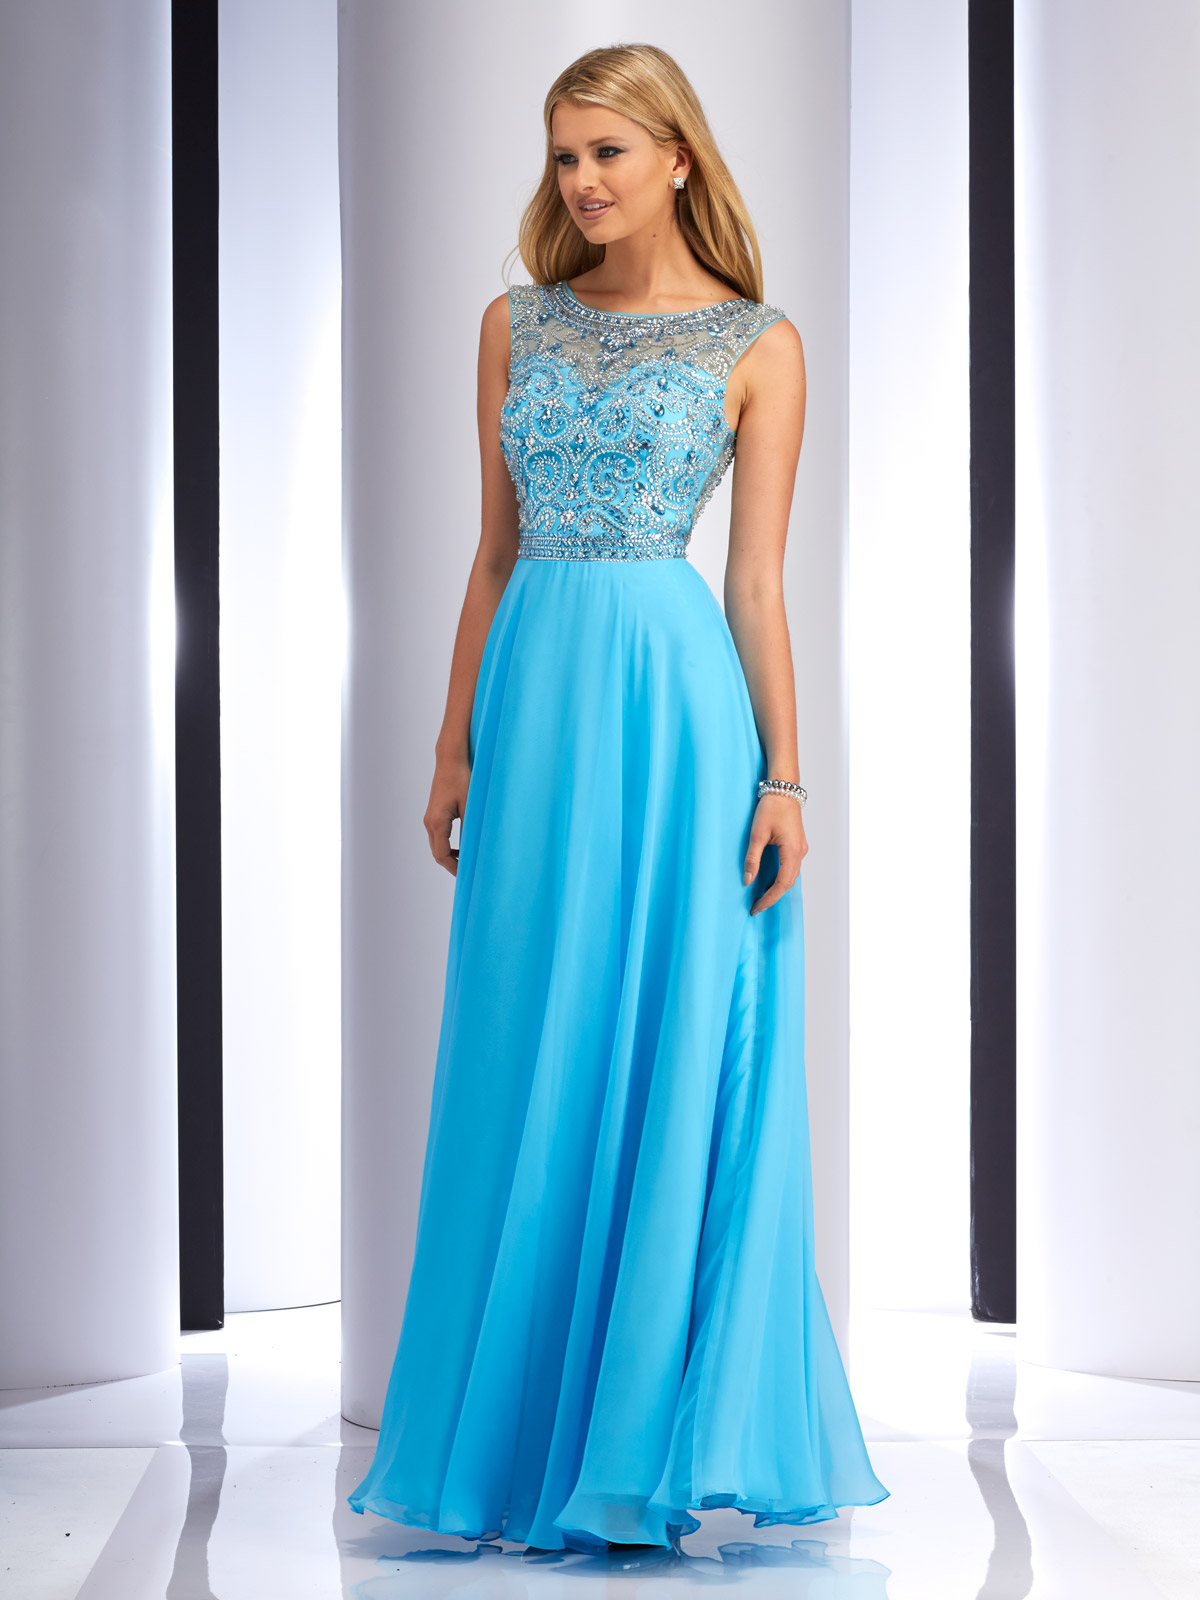 Clarisse 2838 Prom Dress | Promgirl.net